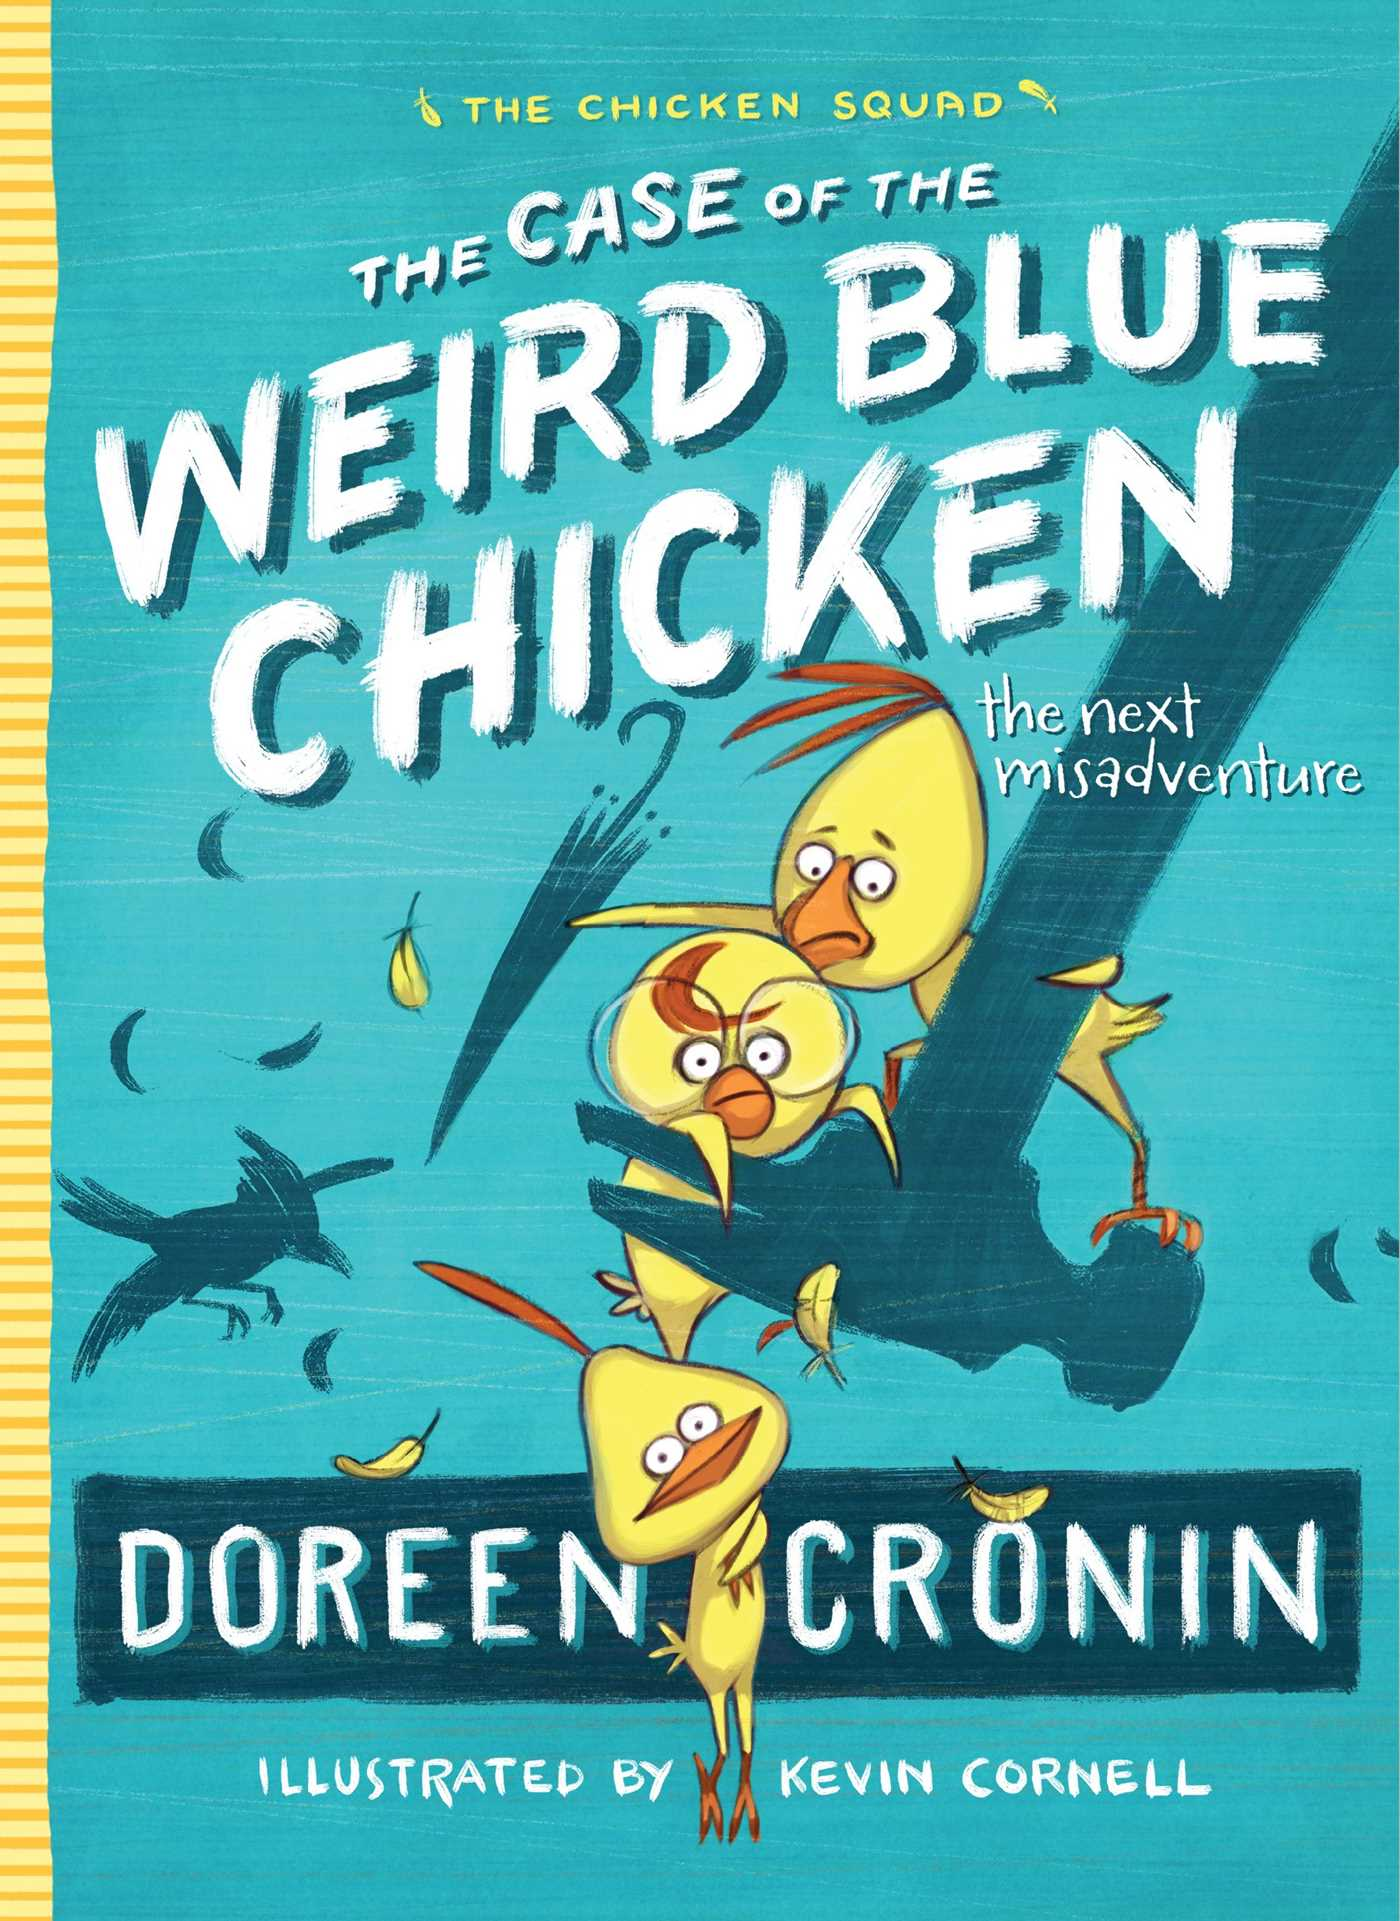 The-case-of-the-weird-blue-chicken-9781442496798_hr